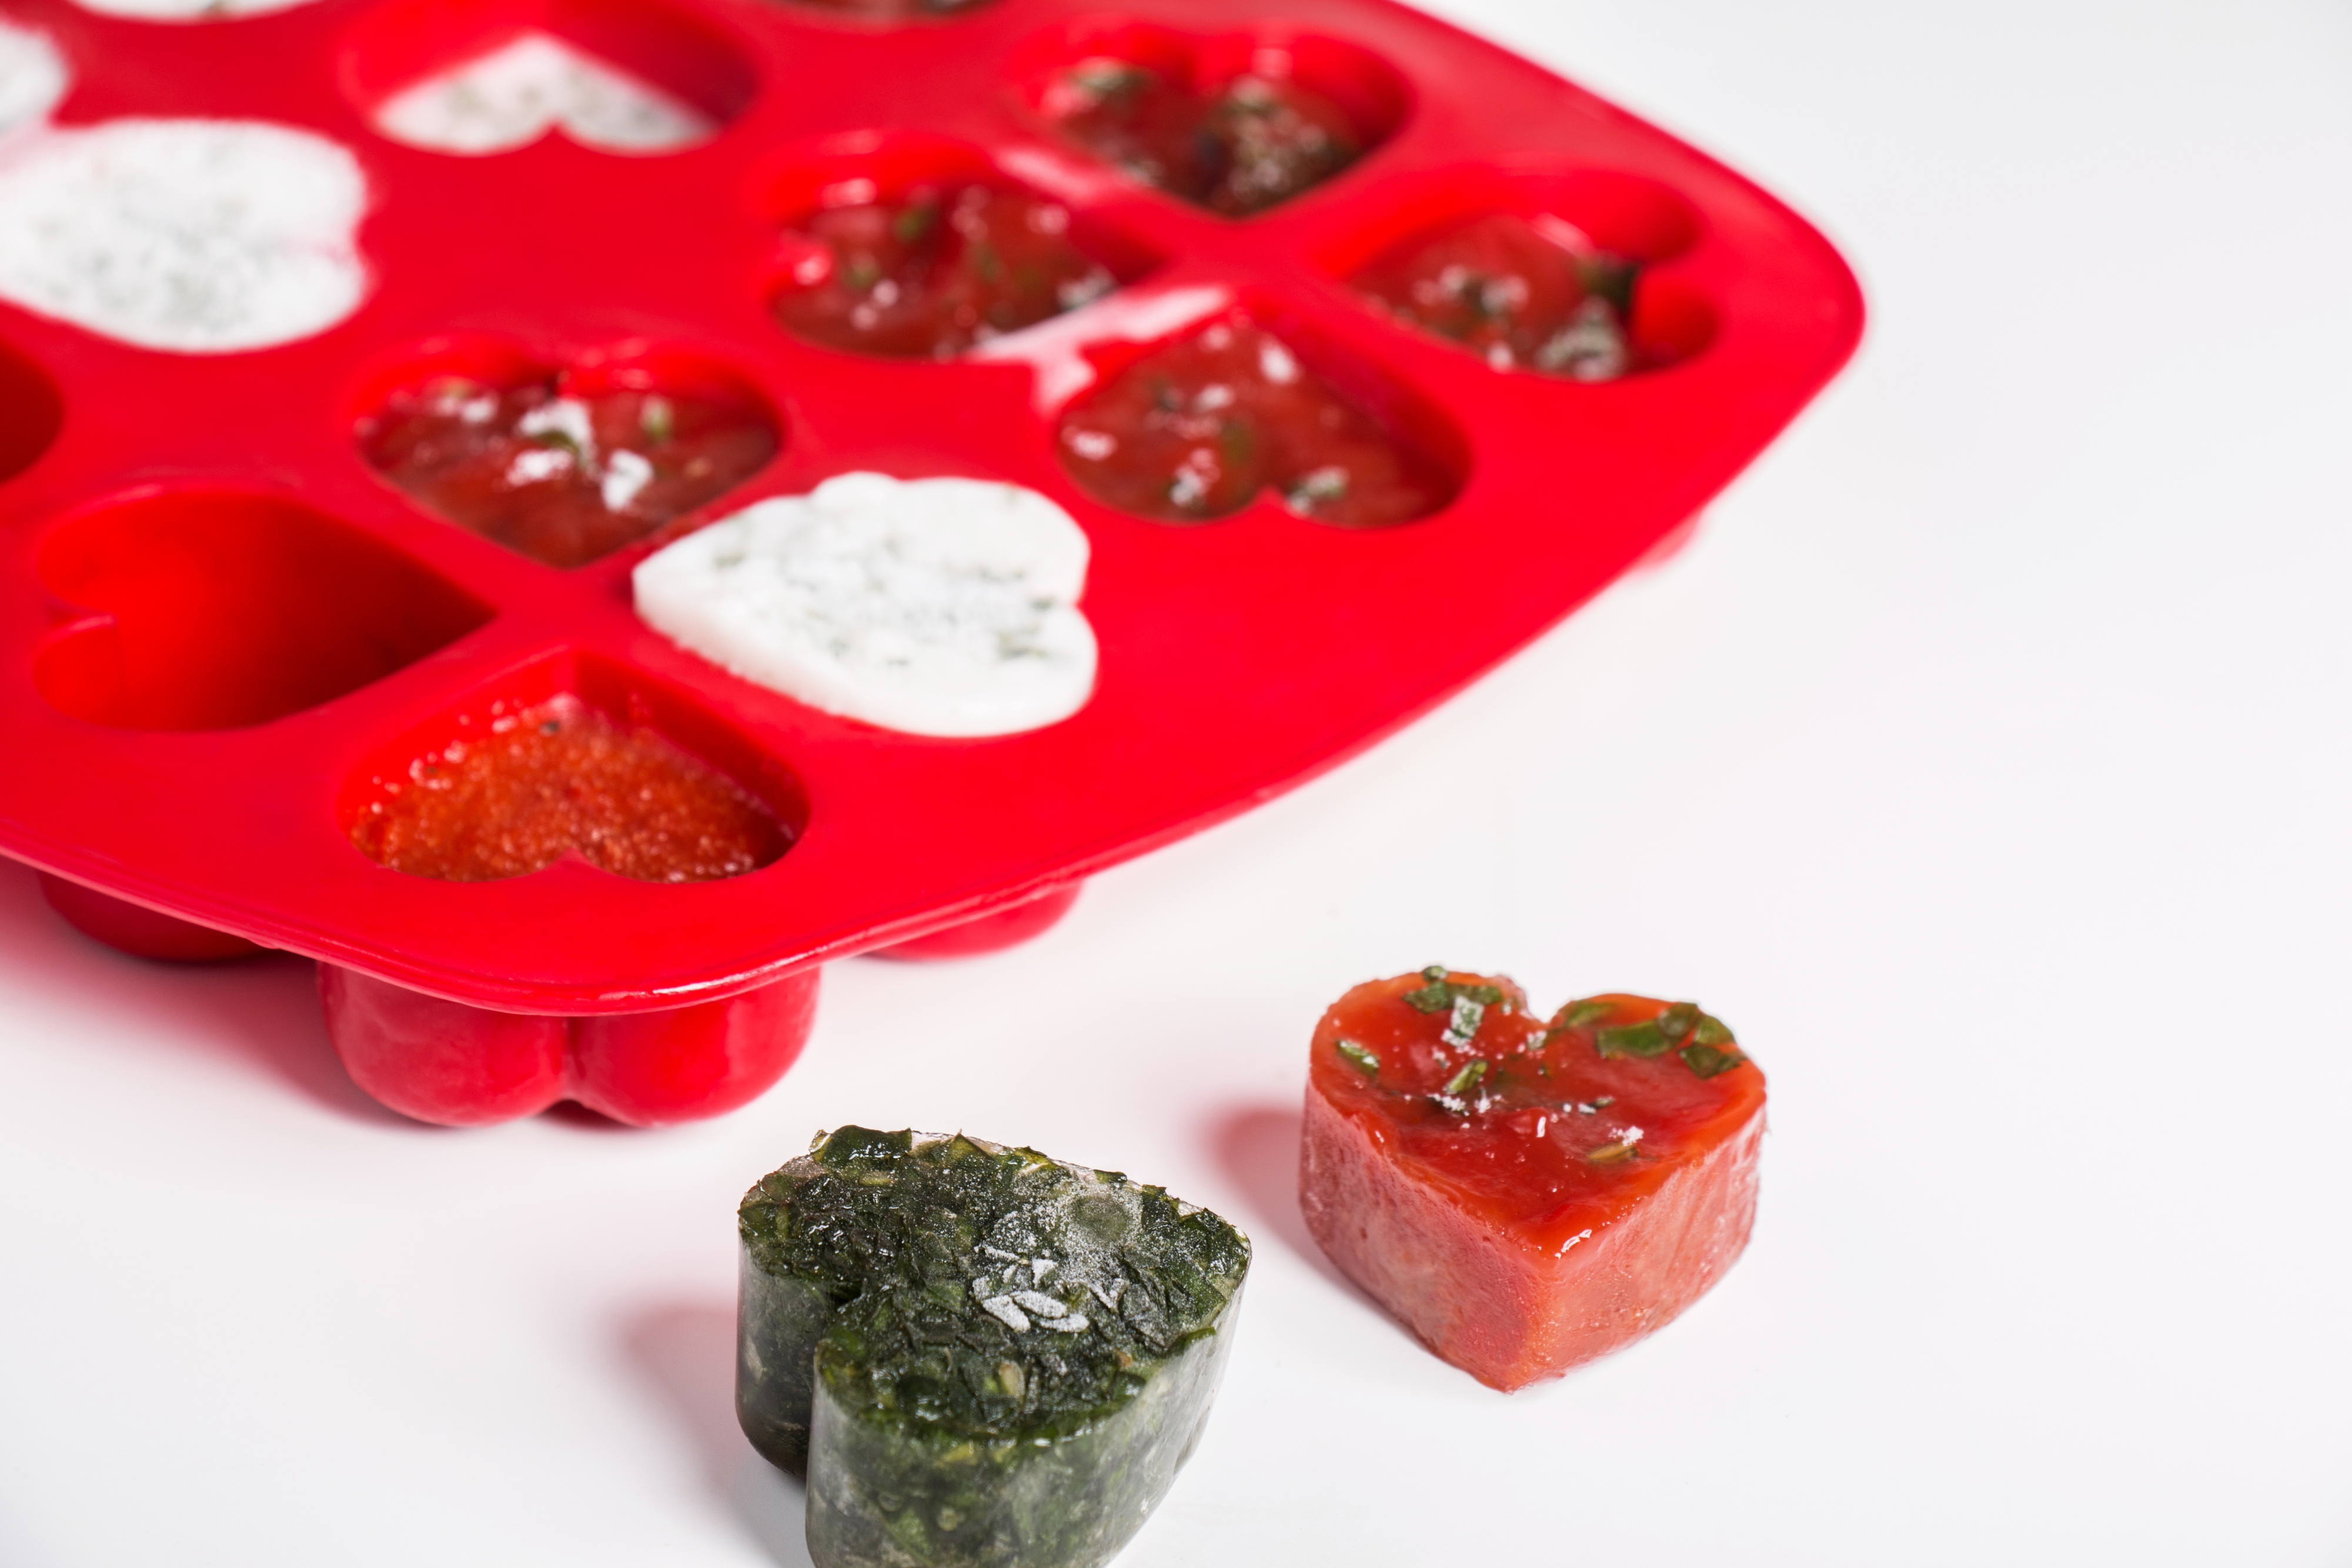 frozen sauces and herbs in ice cube trays